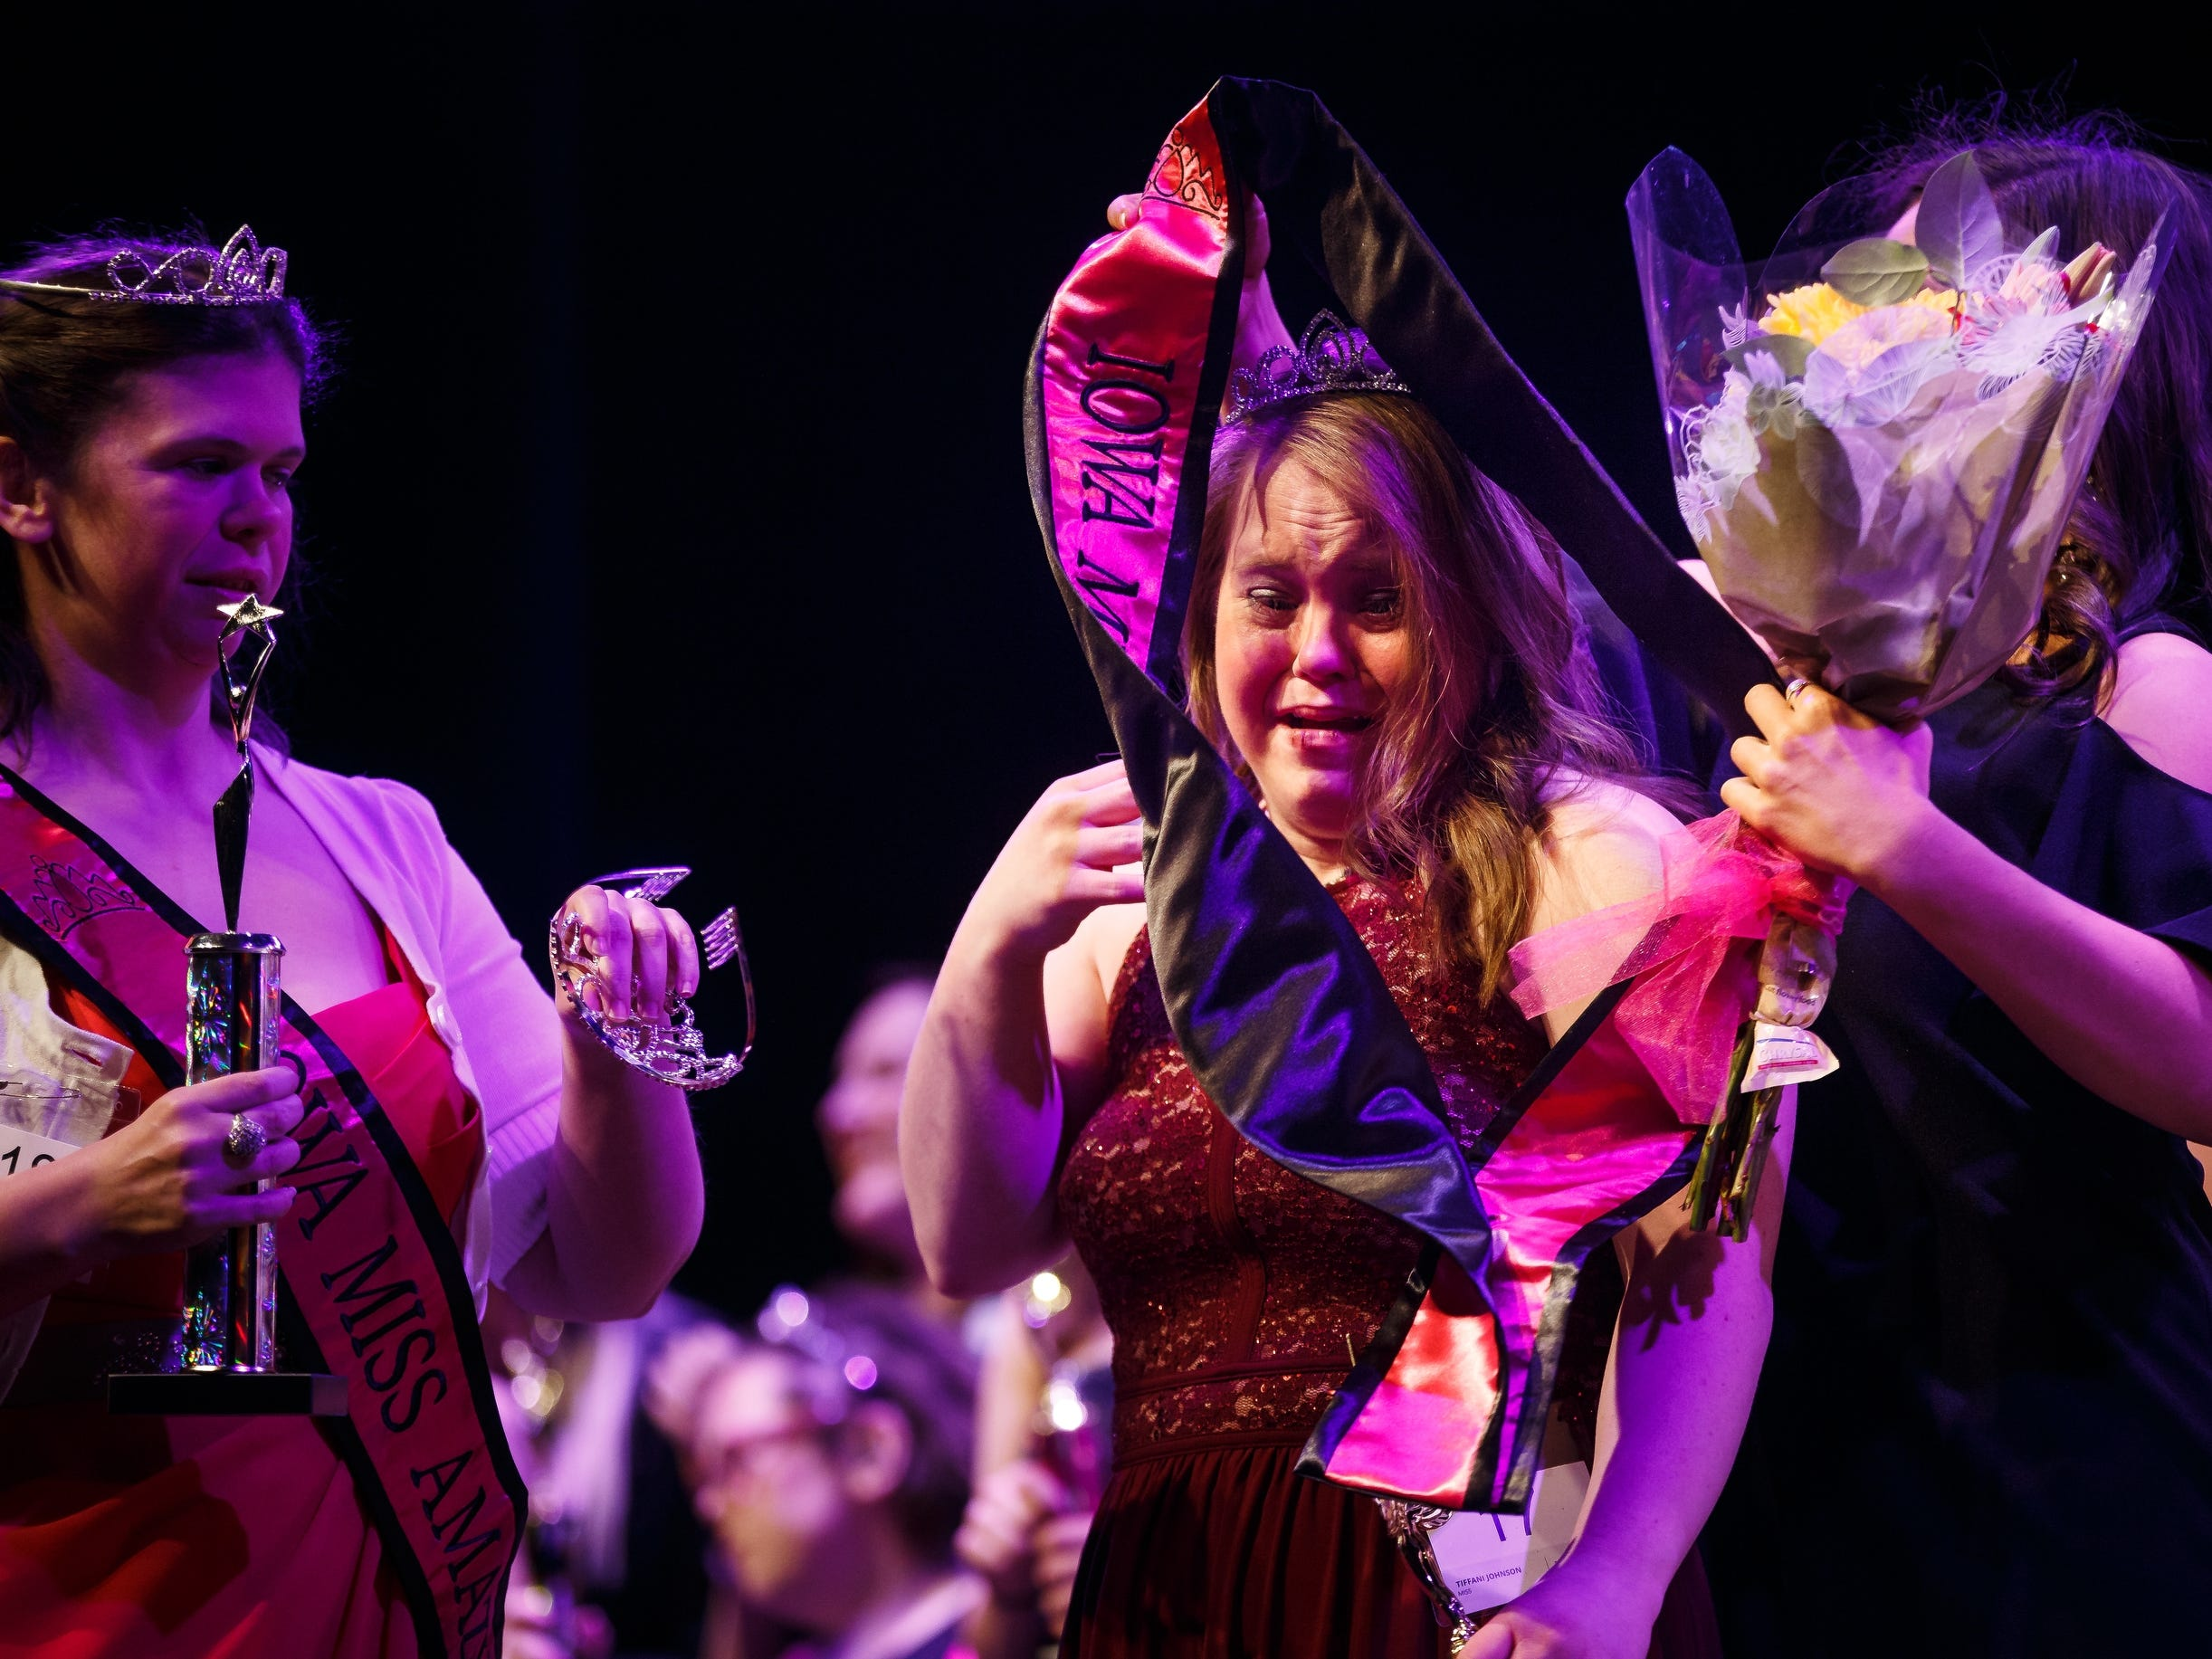 Tiffani Johnson tears up as she is announced as the 2019 Miss Amazing during the 2019 Miss Amazing pageant at Franklin Jr. High School on Saturday, April 13, 2019, in Des Moines. The event started in 2013 and gives women with disabilities the opportunity to learn new skills and build confidence while adding in some friendly competition.